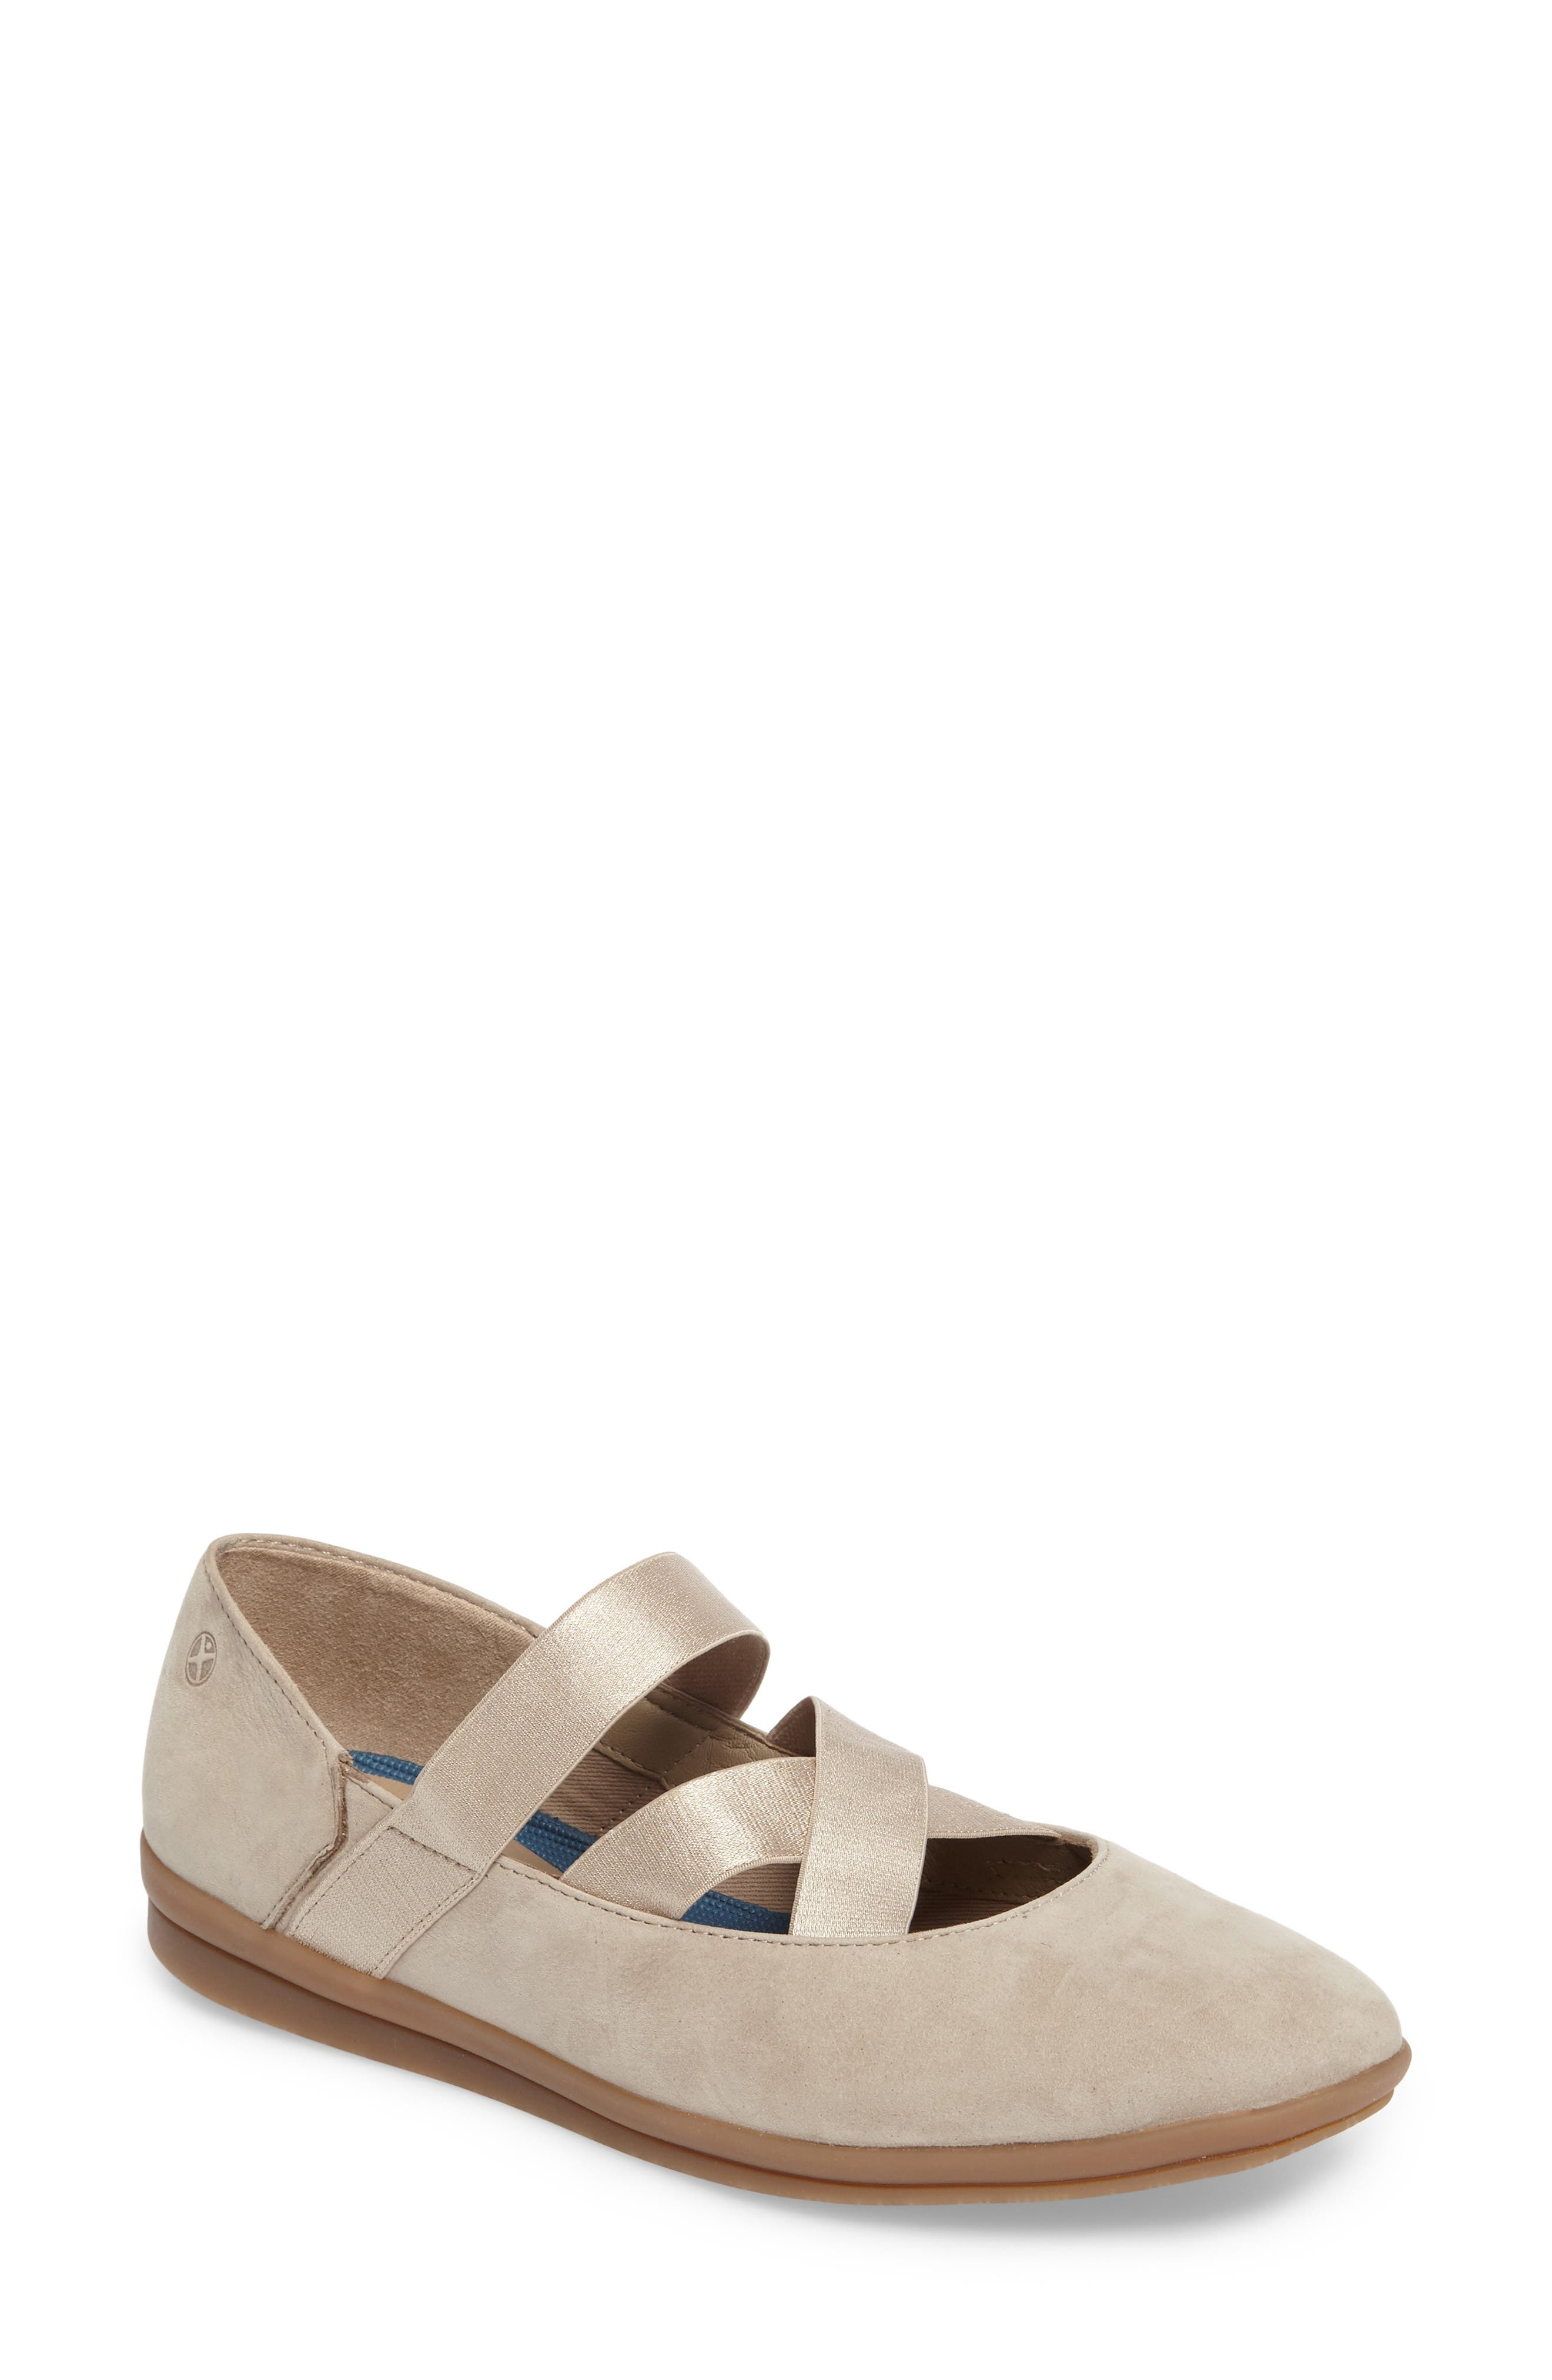 Meree Madrine Cross Strap Flat,                             Main thumbnail 5, color,